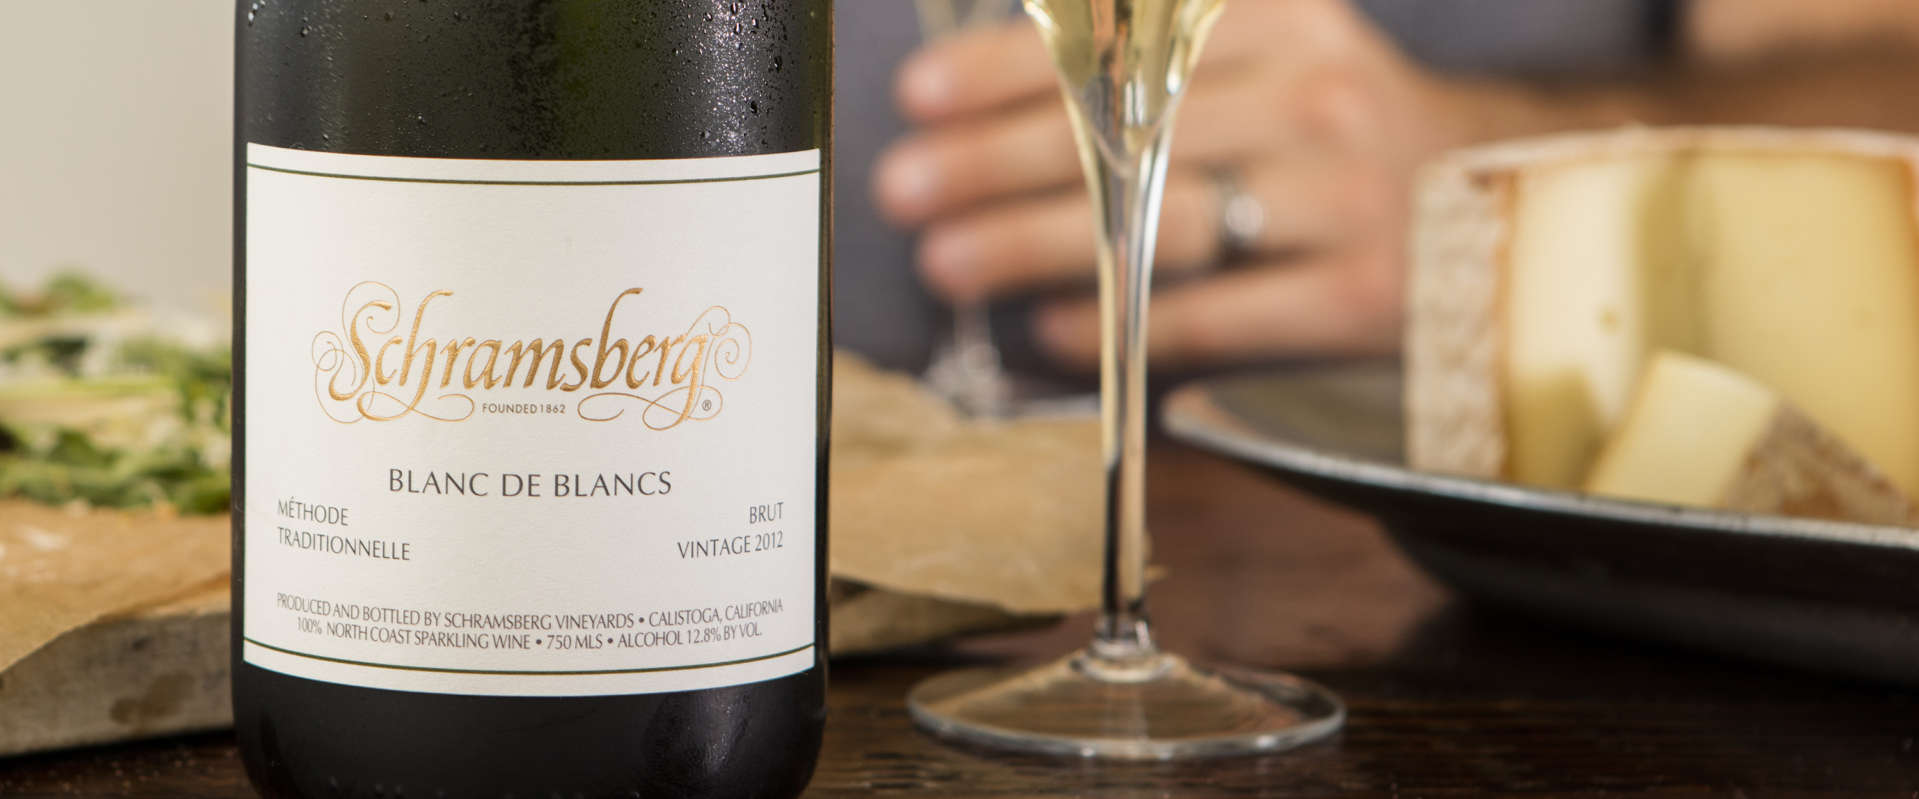 Bottle and glass of Schramsberg Blanc de Blanc sparkling wine paired with cheese